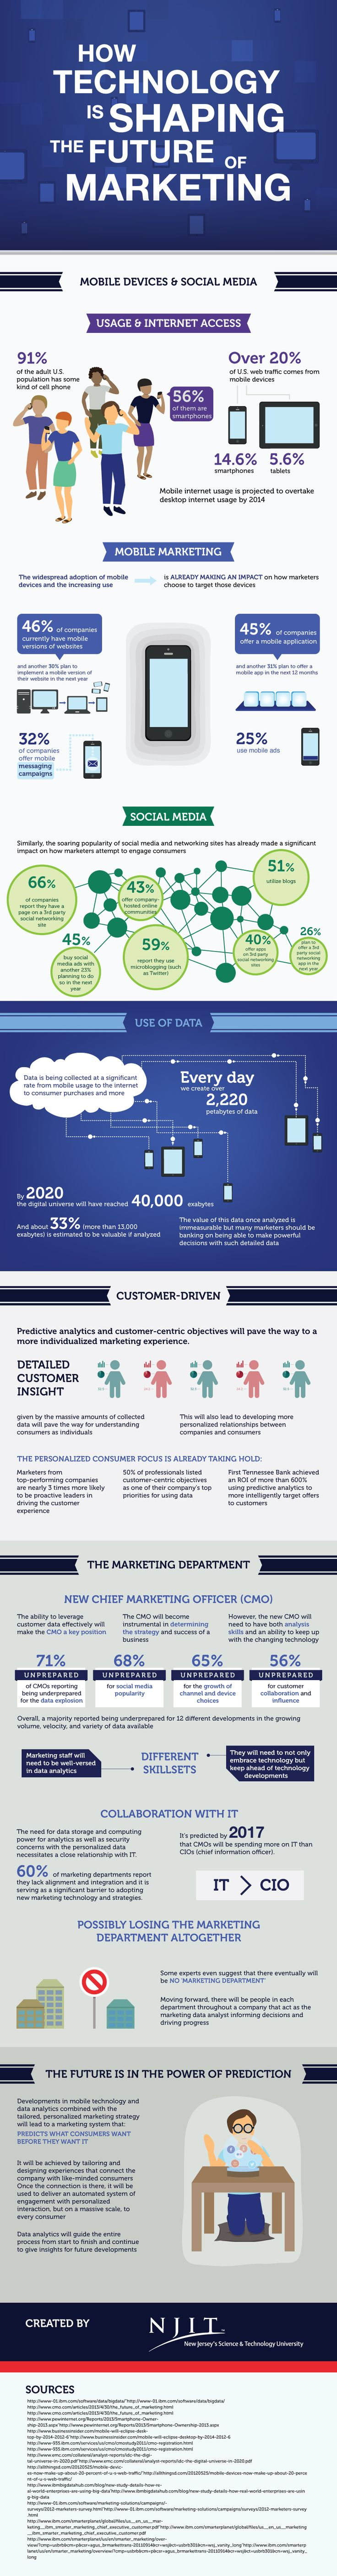 How Technology Is Shaping The Future Of Marketing Infographic | GreenBook #infographics